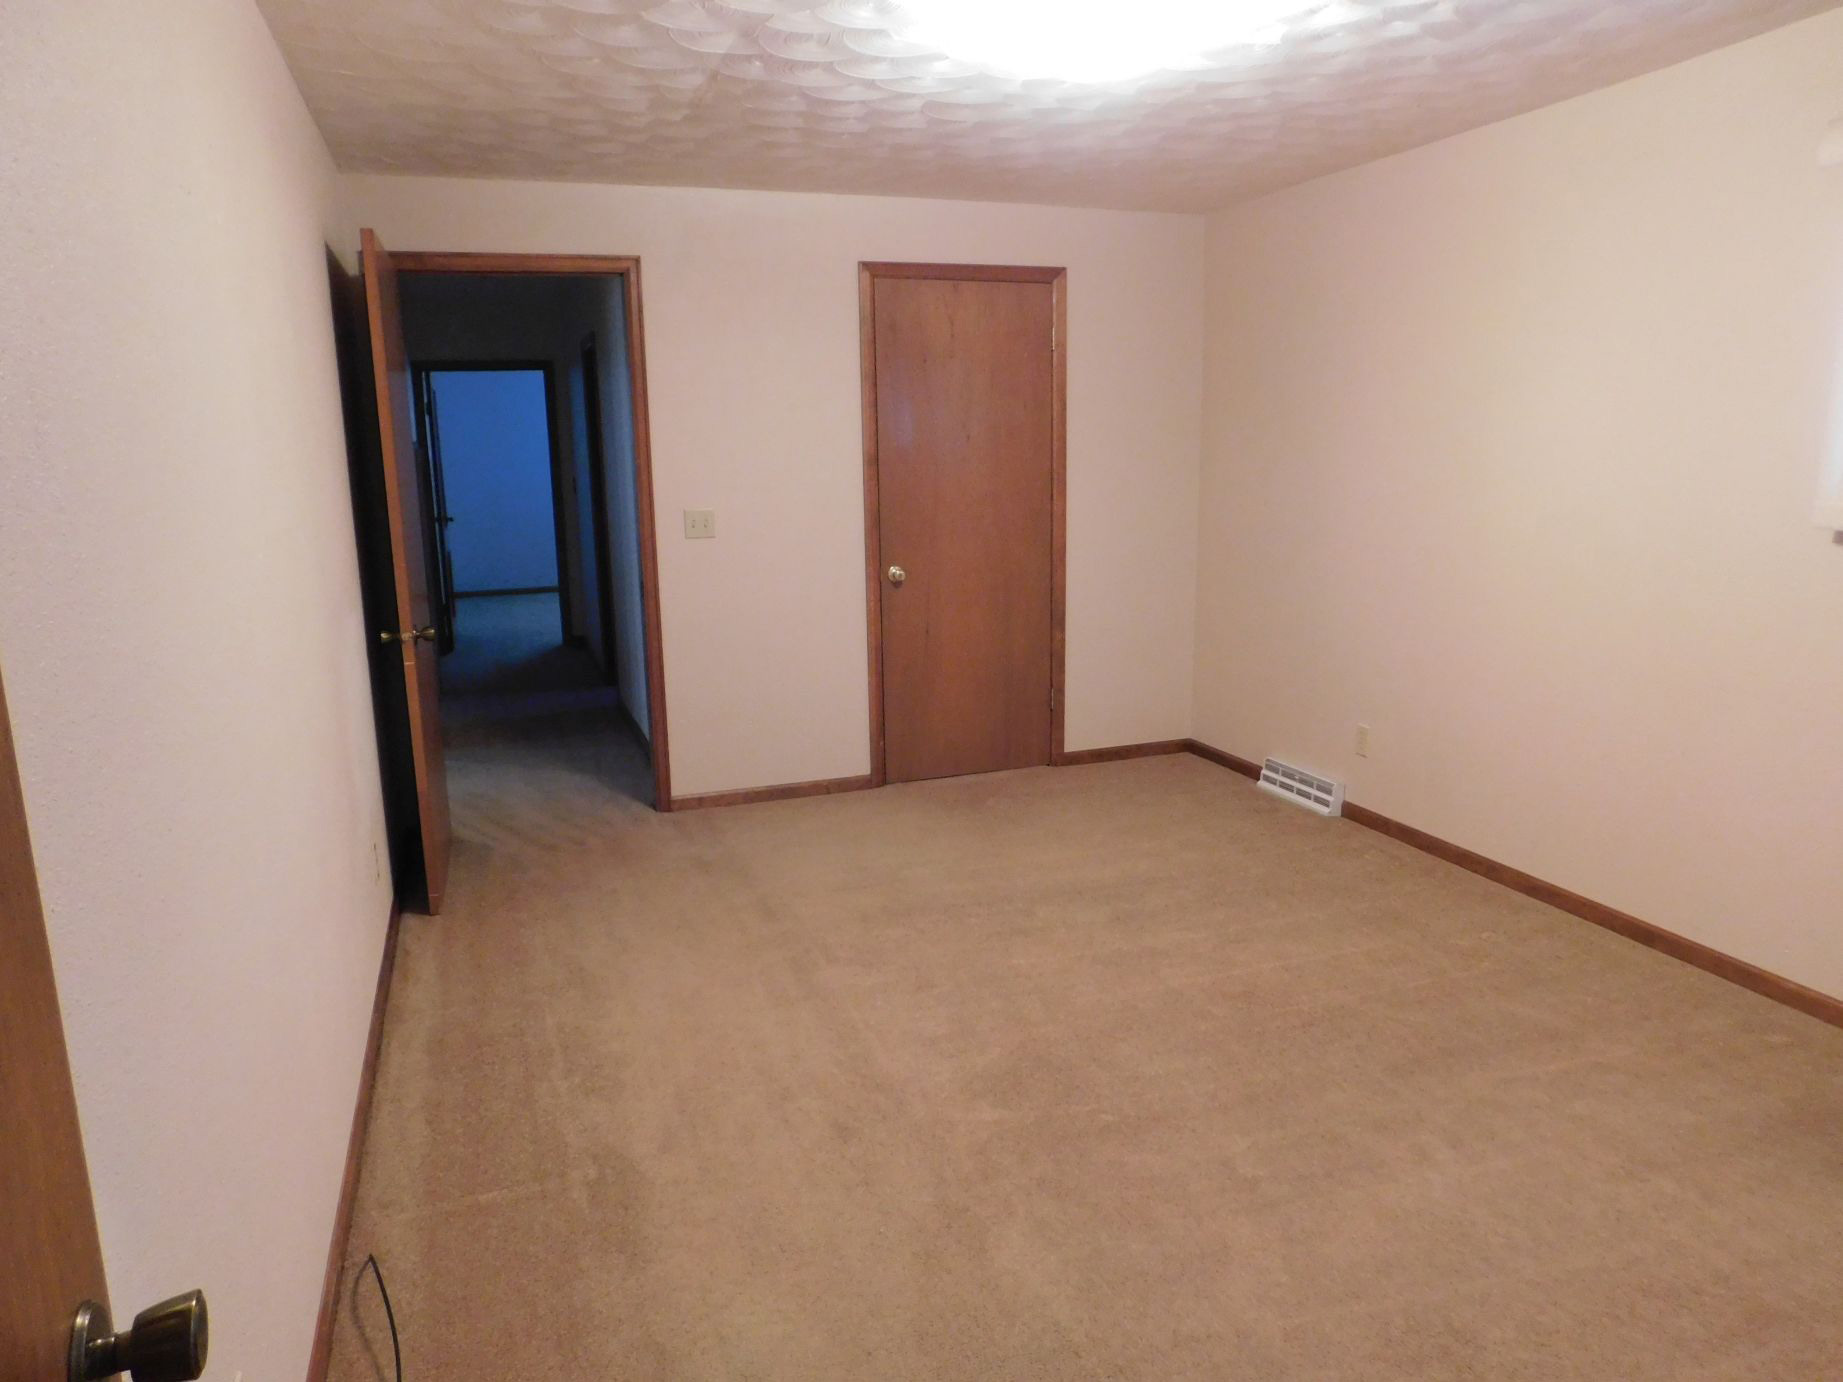 Parcel-2A---1-of-2-bedrooms-upstairs.jpg